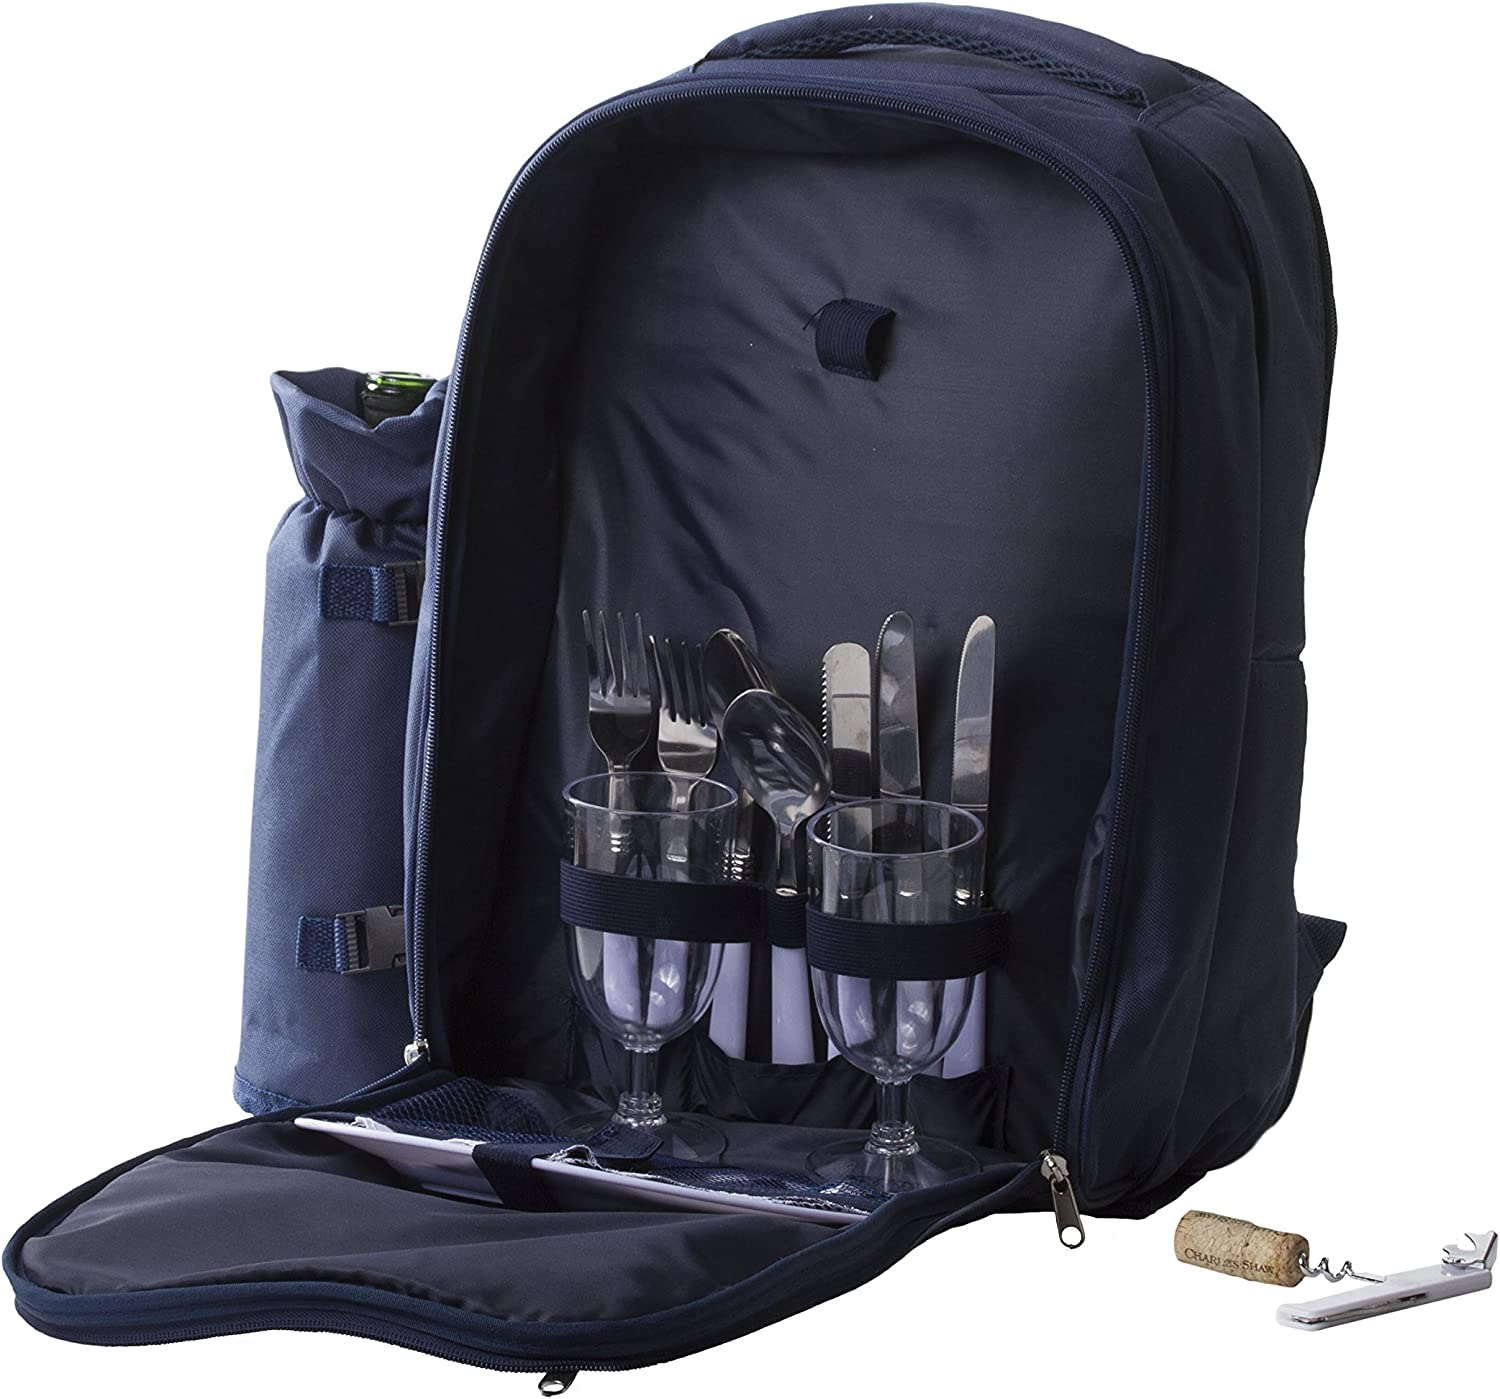 Imperial Home Insulated Picnic Basket - Lunch Tote Cooler Picnic Backpack w/Two Place Setting (Navy Blue)